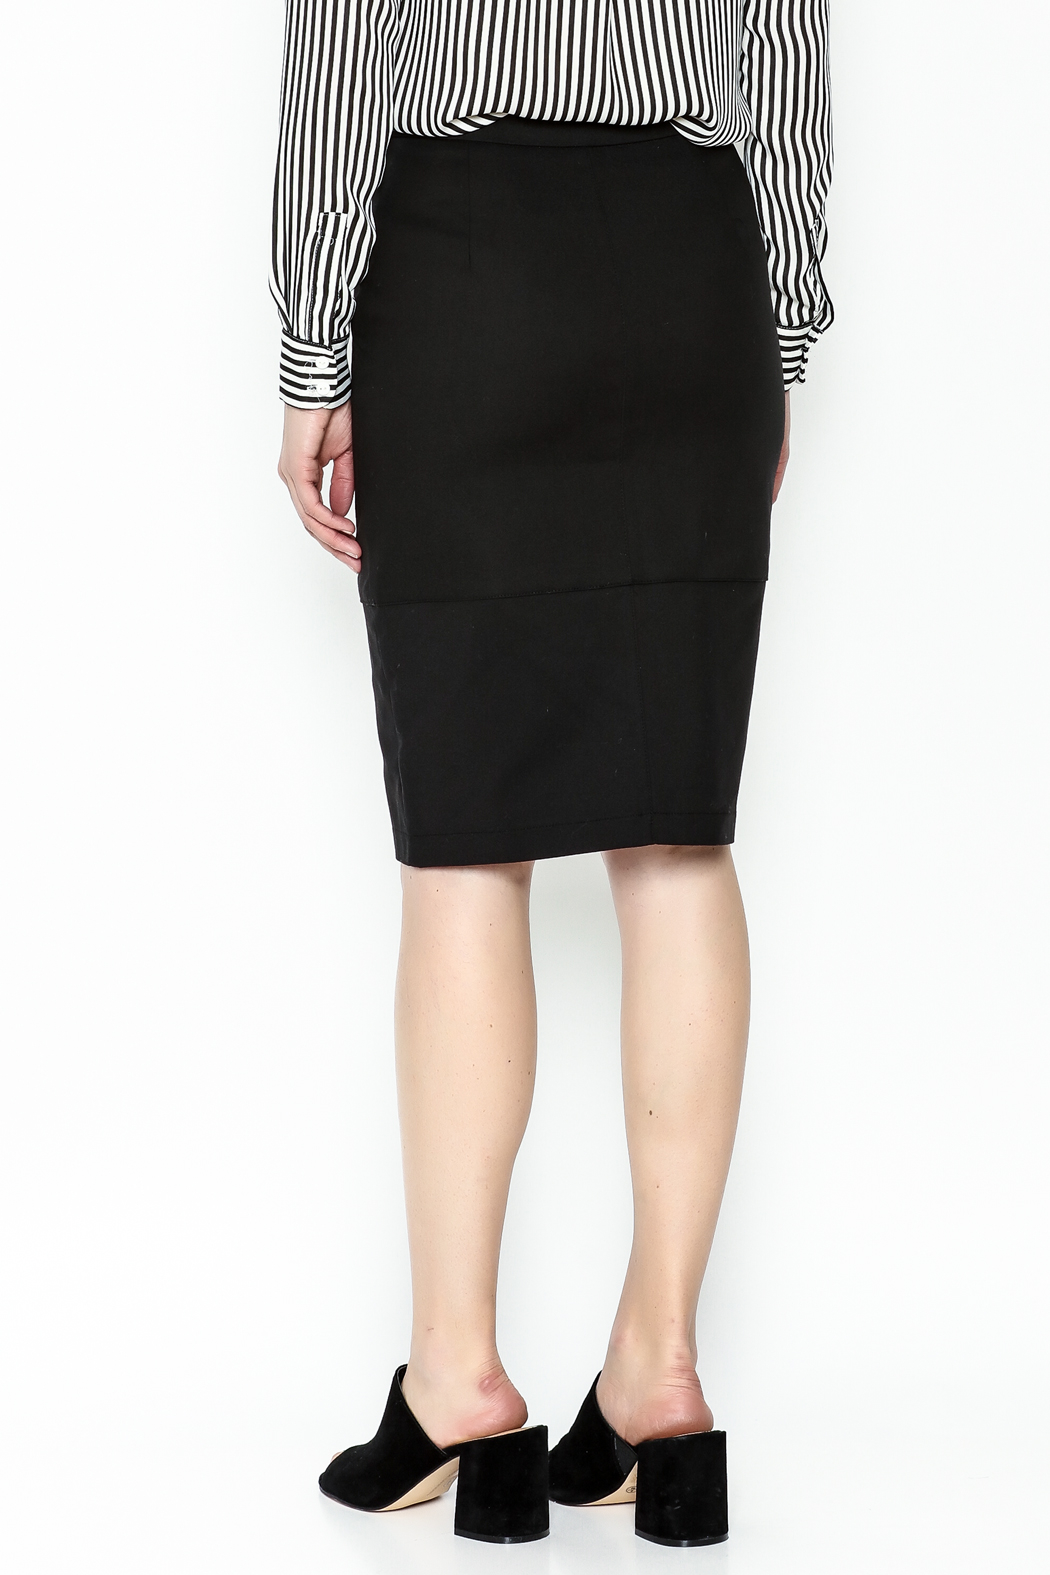 Alythea Black Pencil Skirt - Back Cropped Image